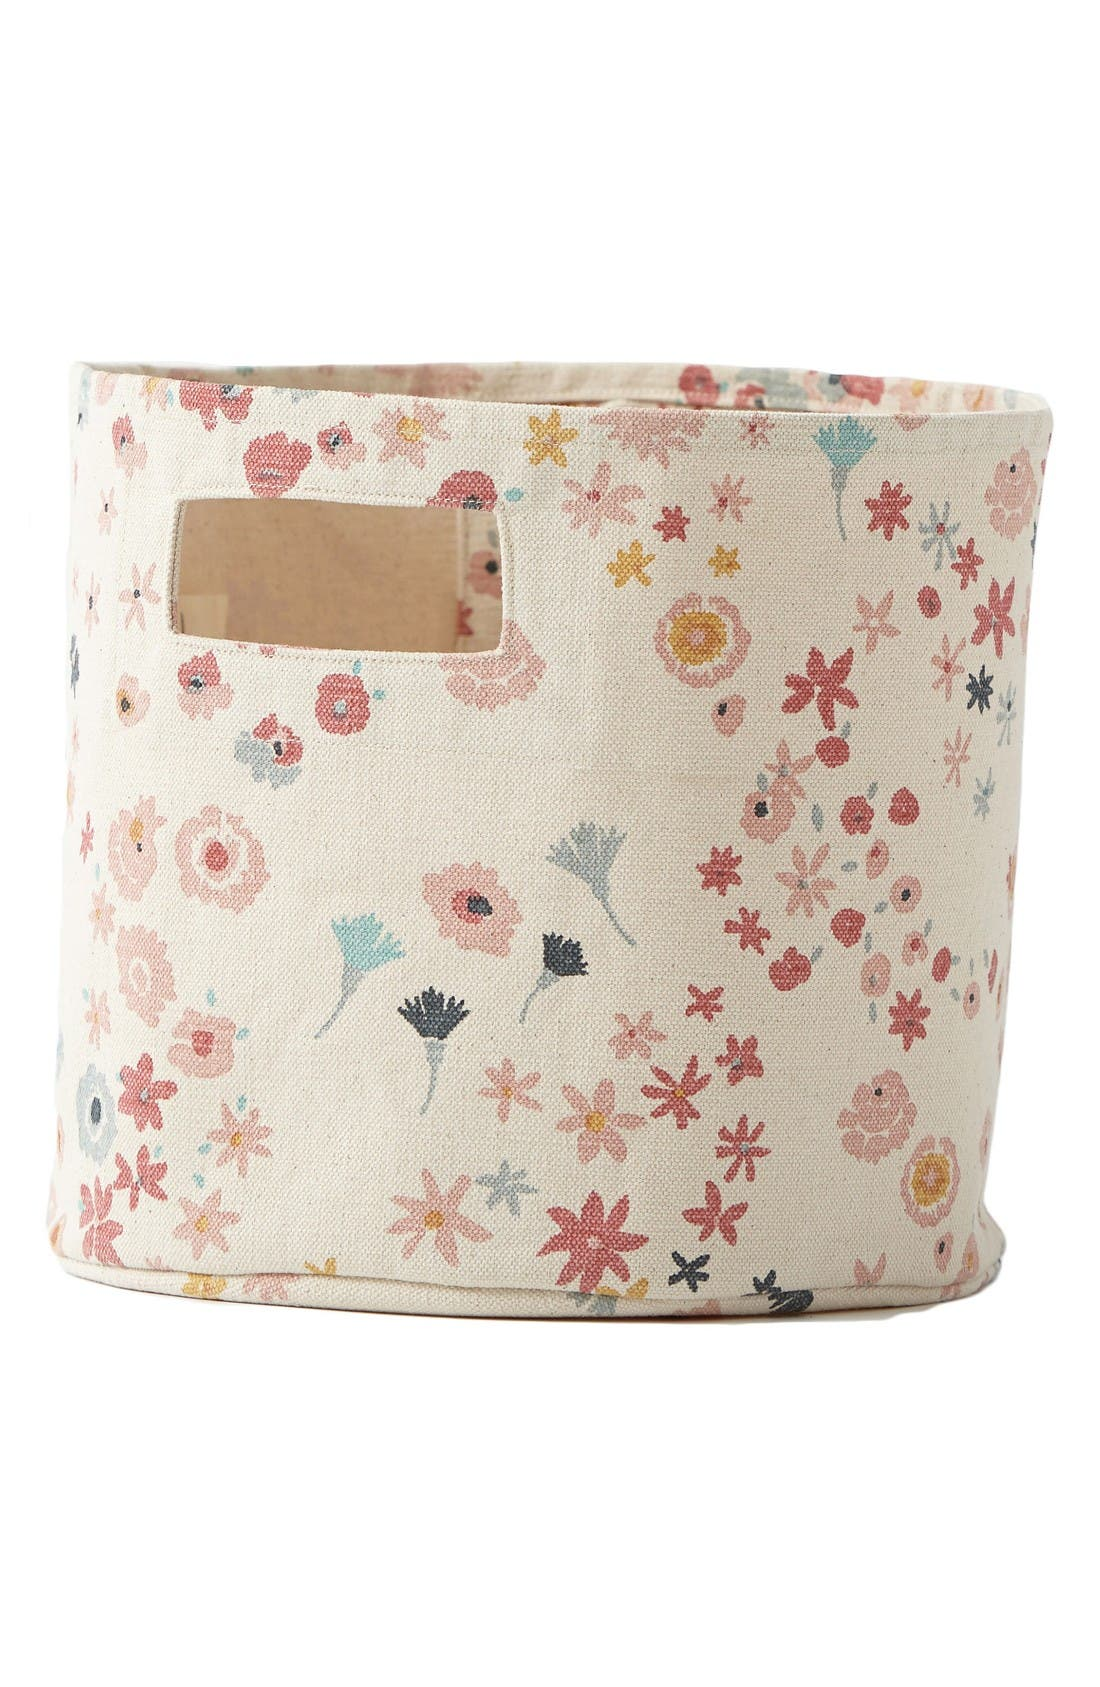 Meadow Pint Print Canvas Bin,                             Main thumbnail 1, color,                             Pink